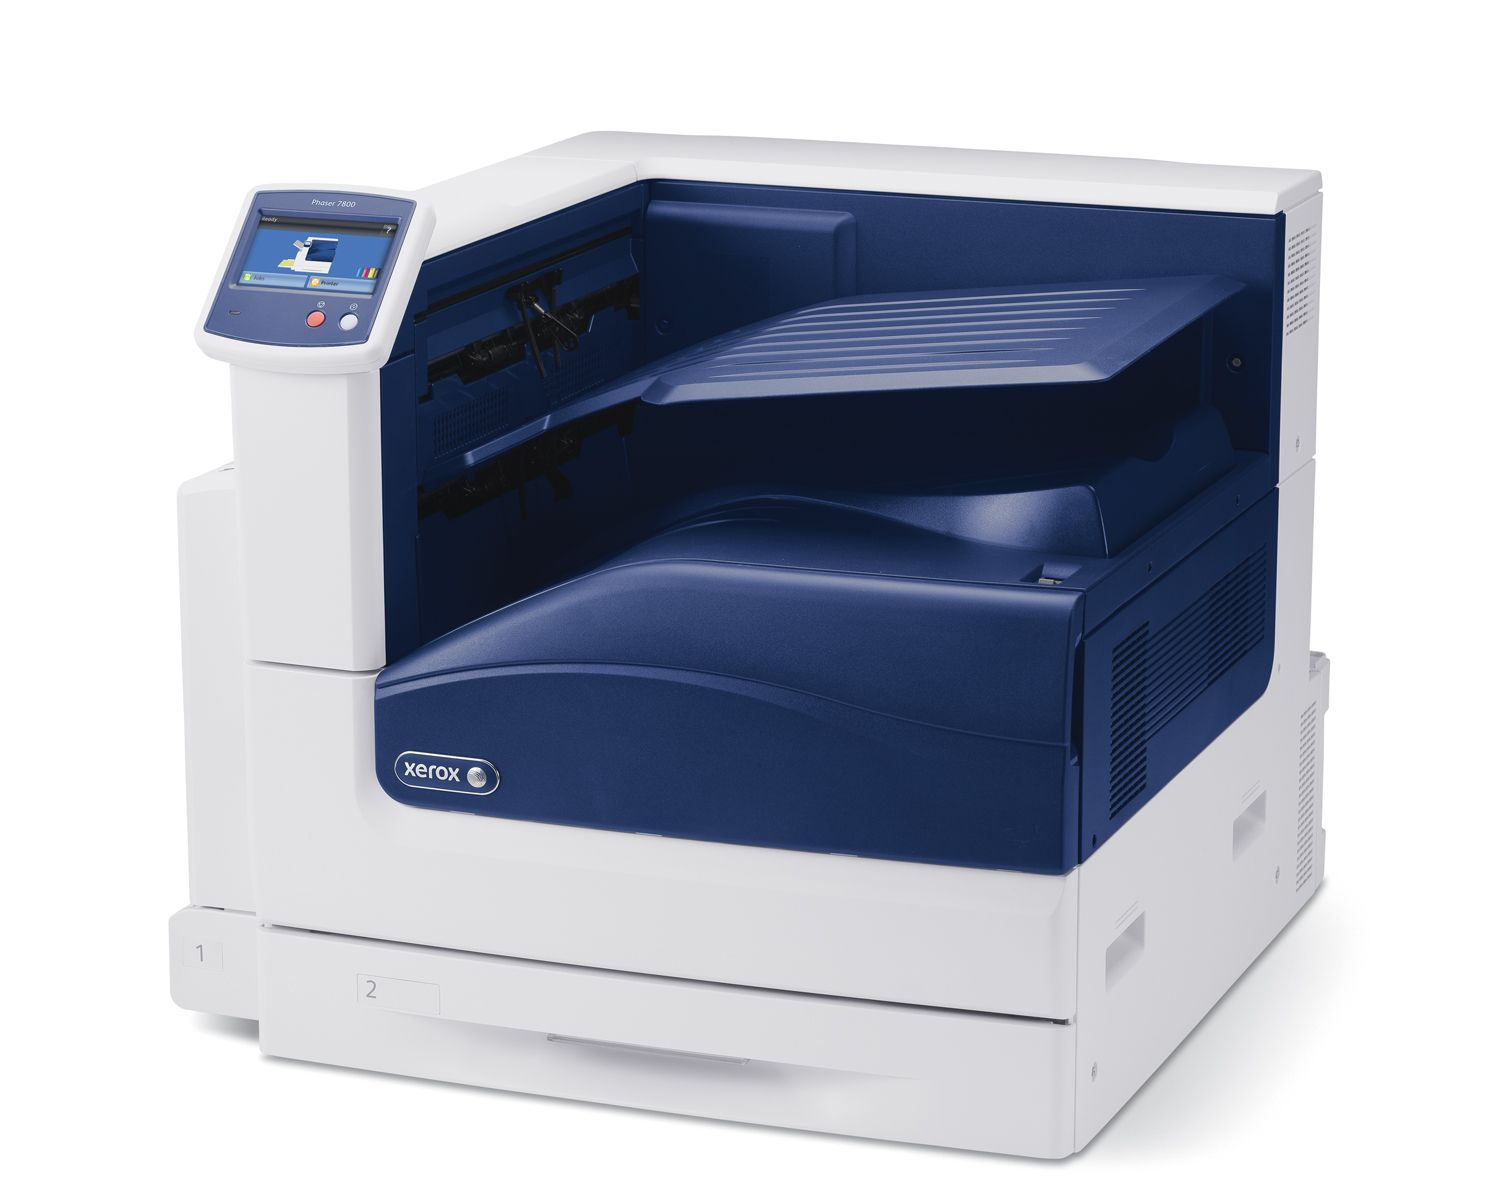 Would Love This Fuji Xerox 7800 With Images Color Printer